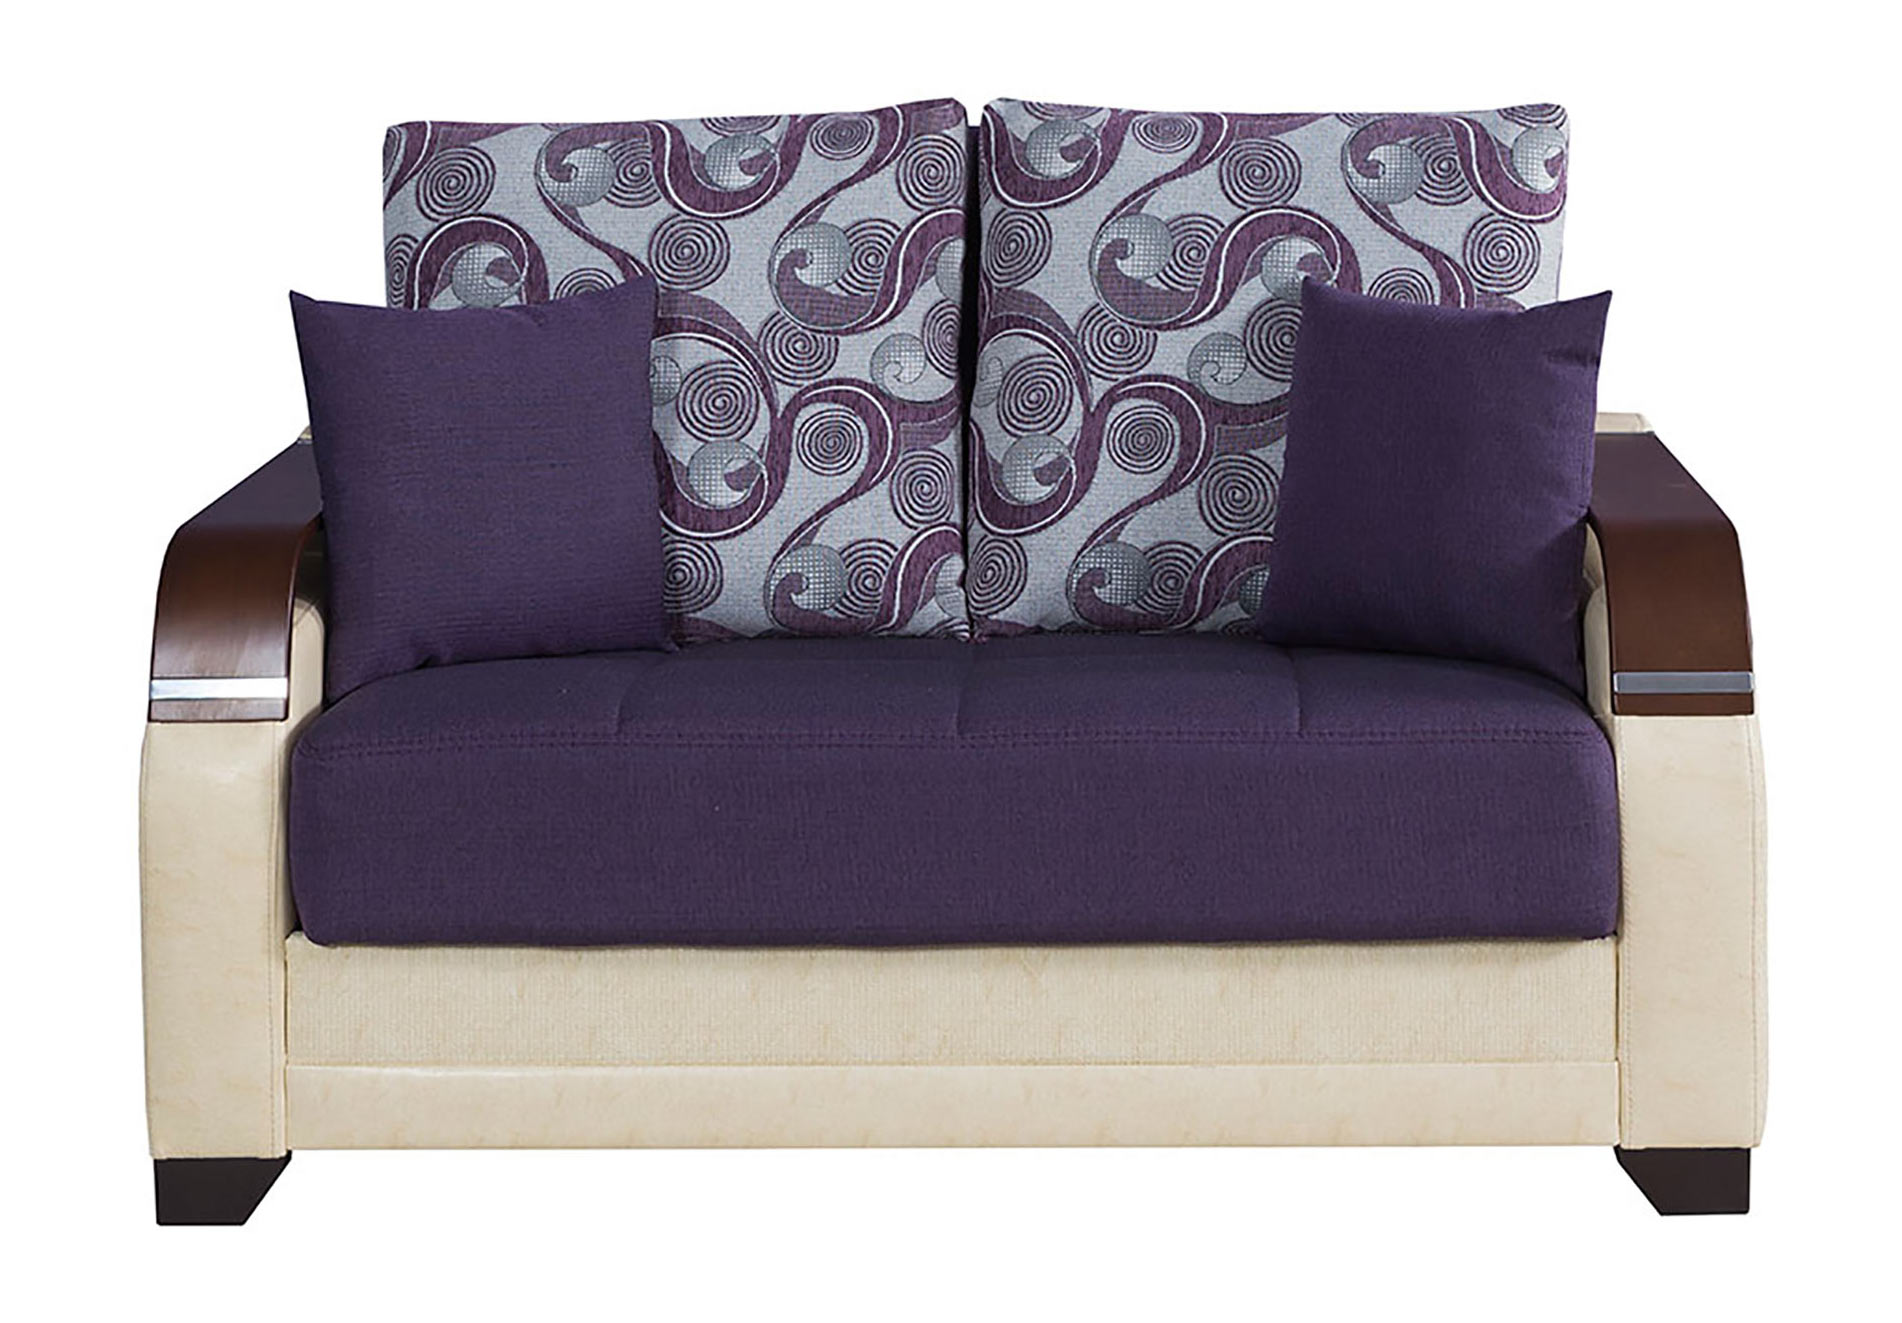 La Reina Moon Dark Purple Convertible Loveseat By Casamode